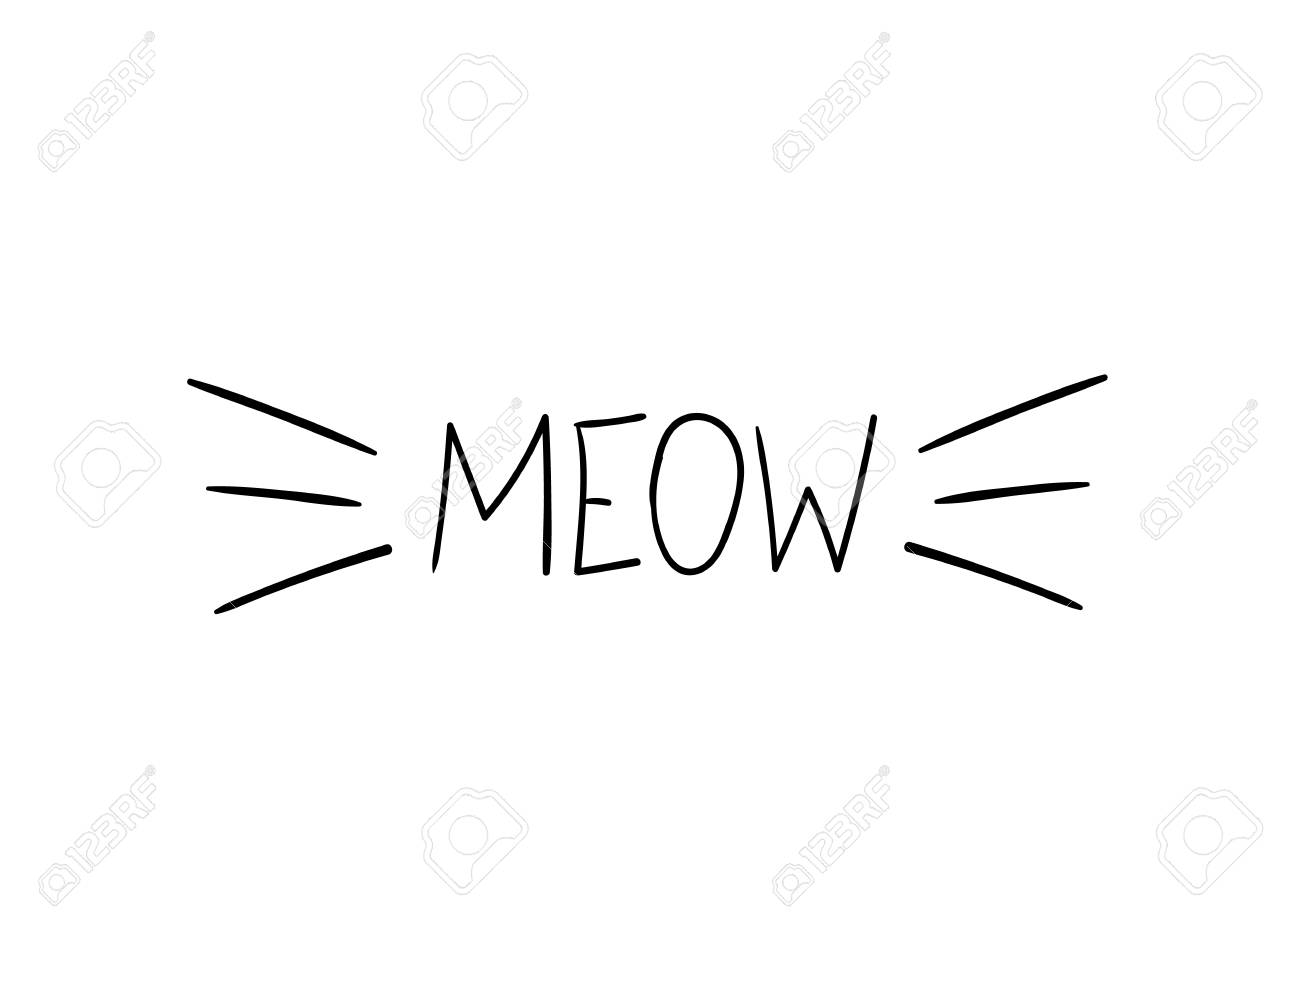 Vector Meow Illustration, Cat Whiskers Hand Drawn Illustration...